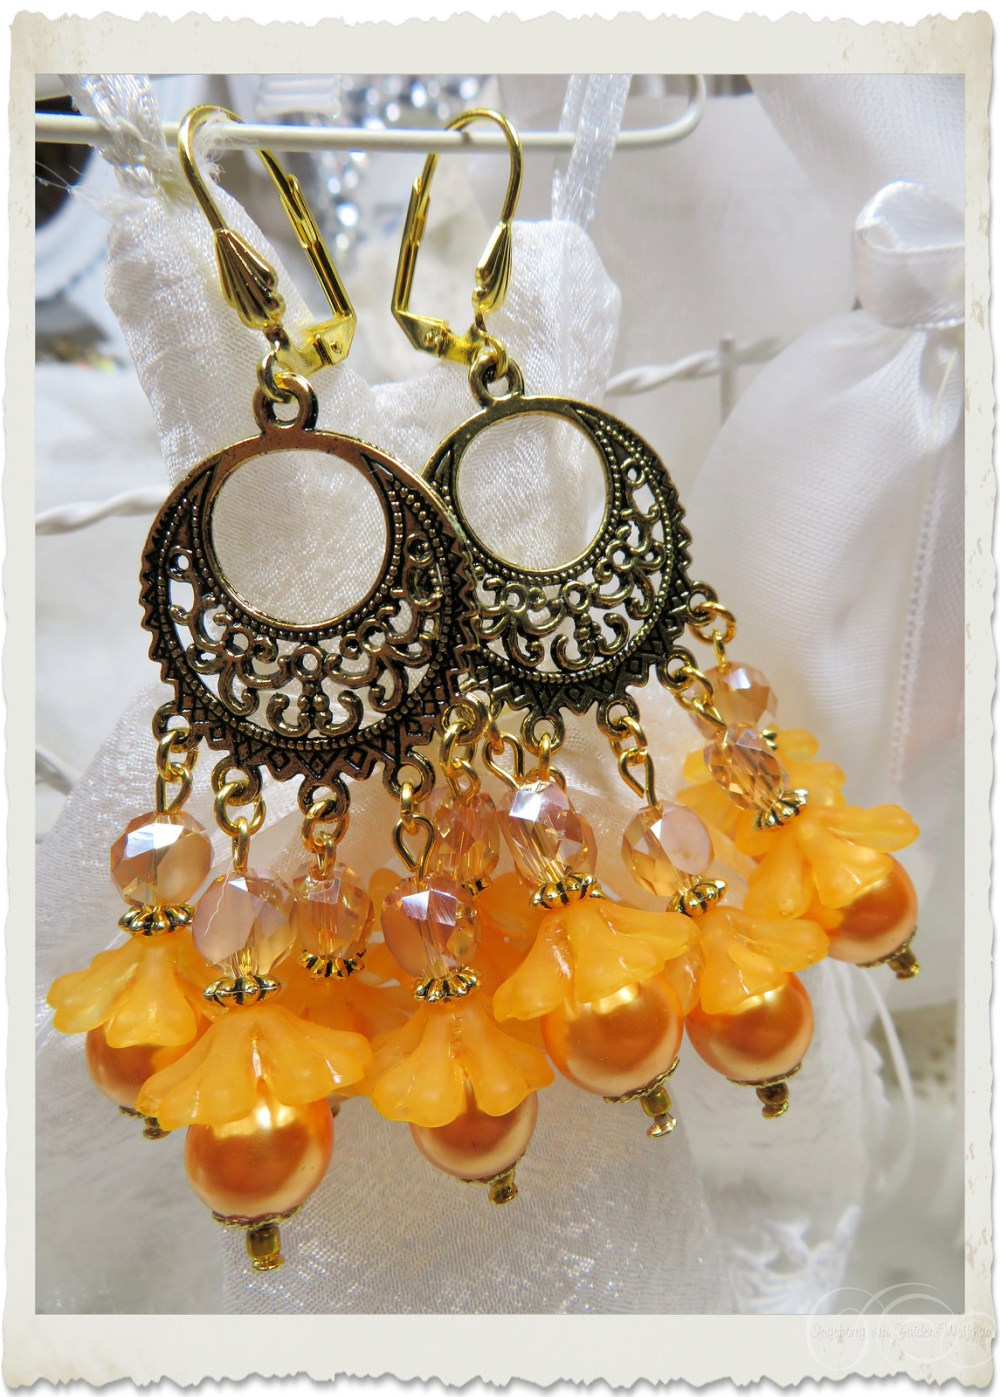 Handmade orange yellow floral chandelier earrings by Ingeborg van Zuiden